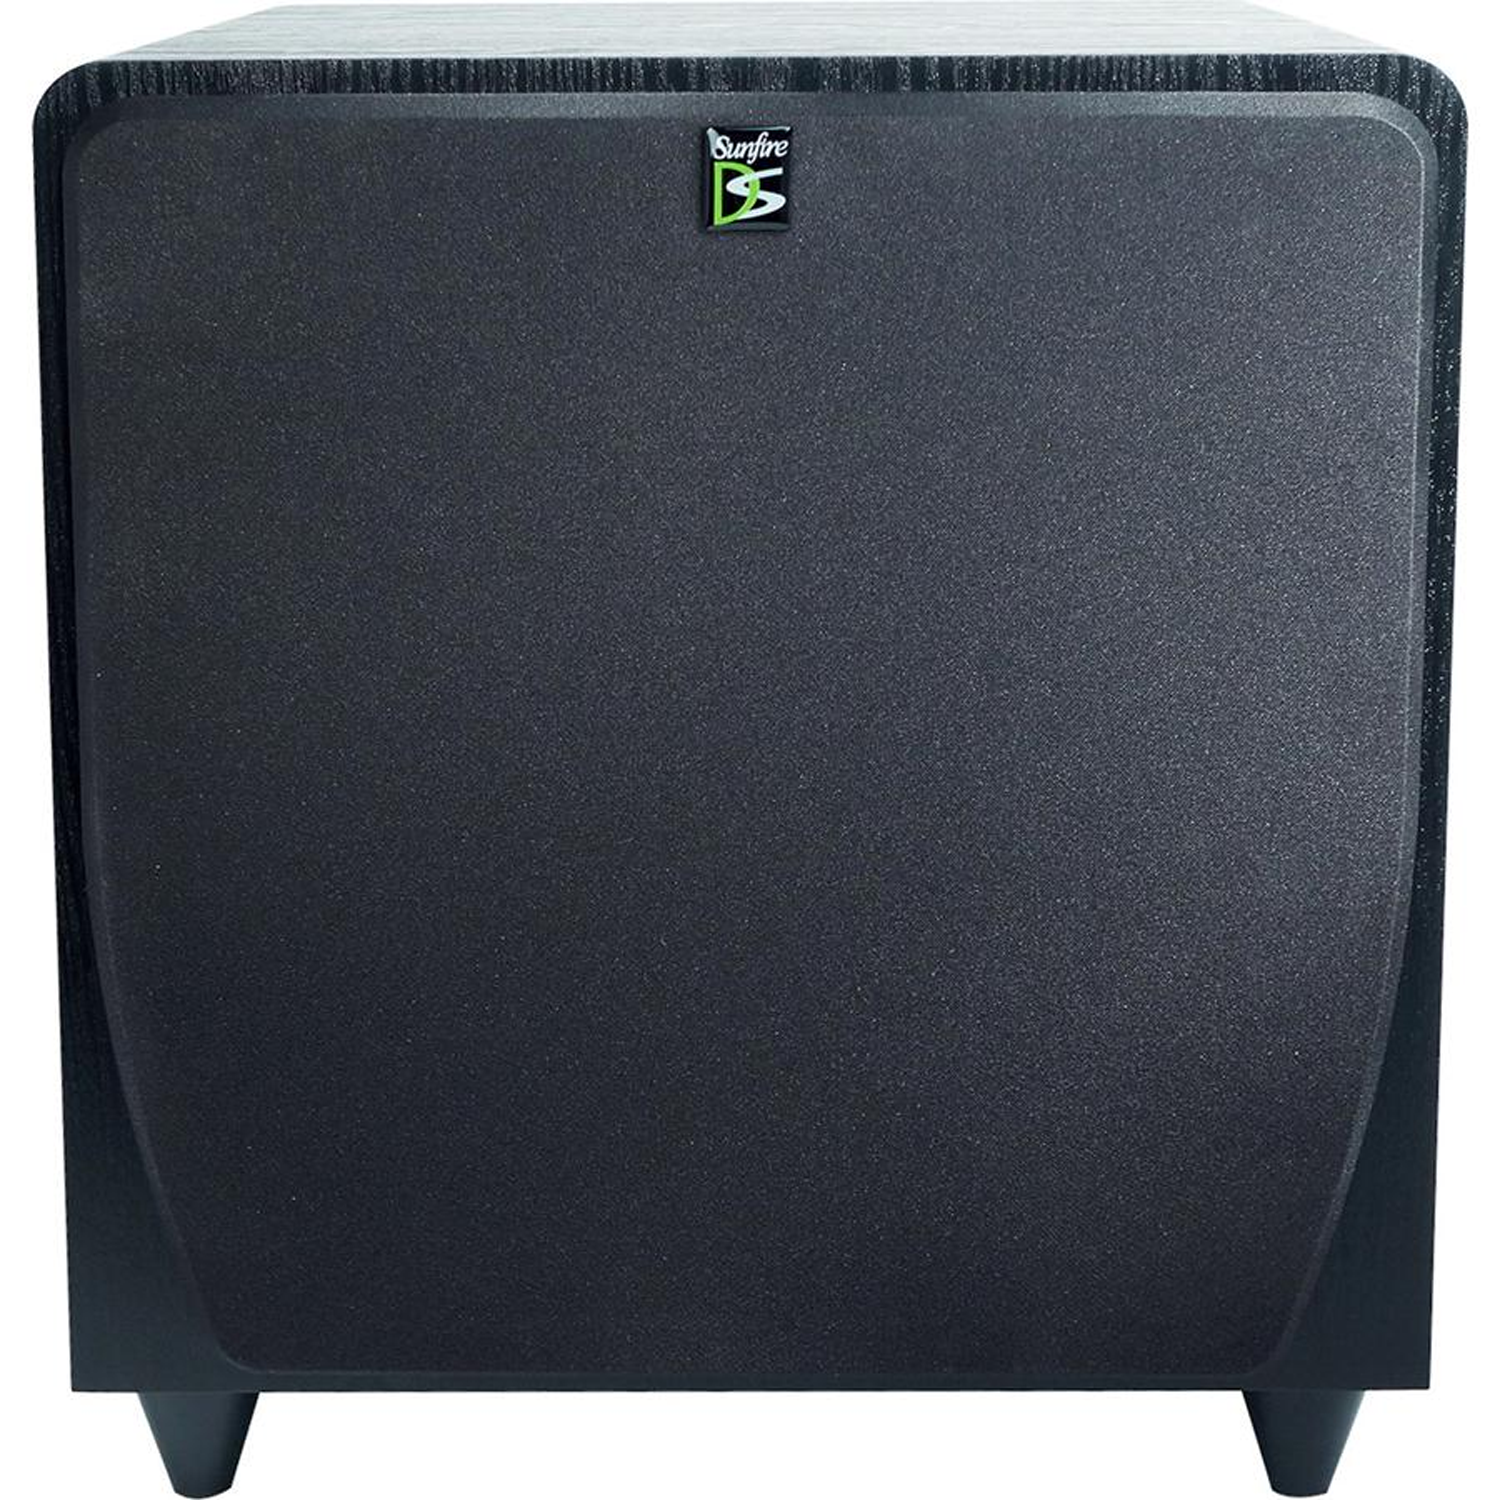 Sunfire Sds 12 300 Watt Dual Driver Powered Subwoofer Active Crossover Electronic Design